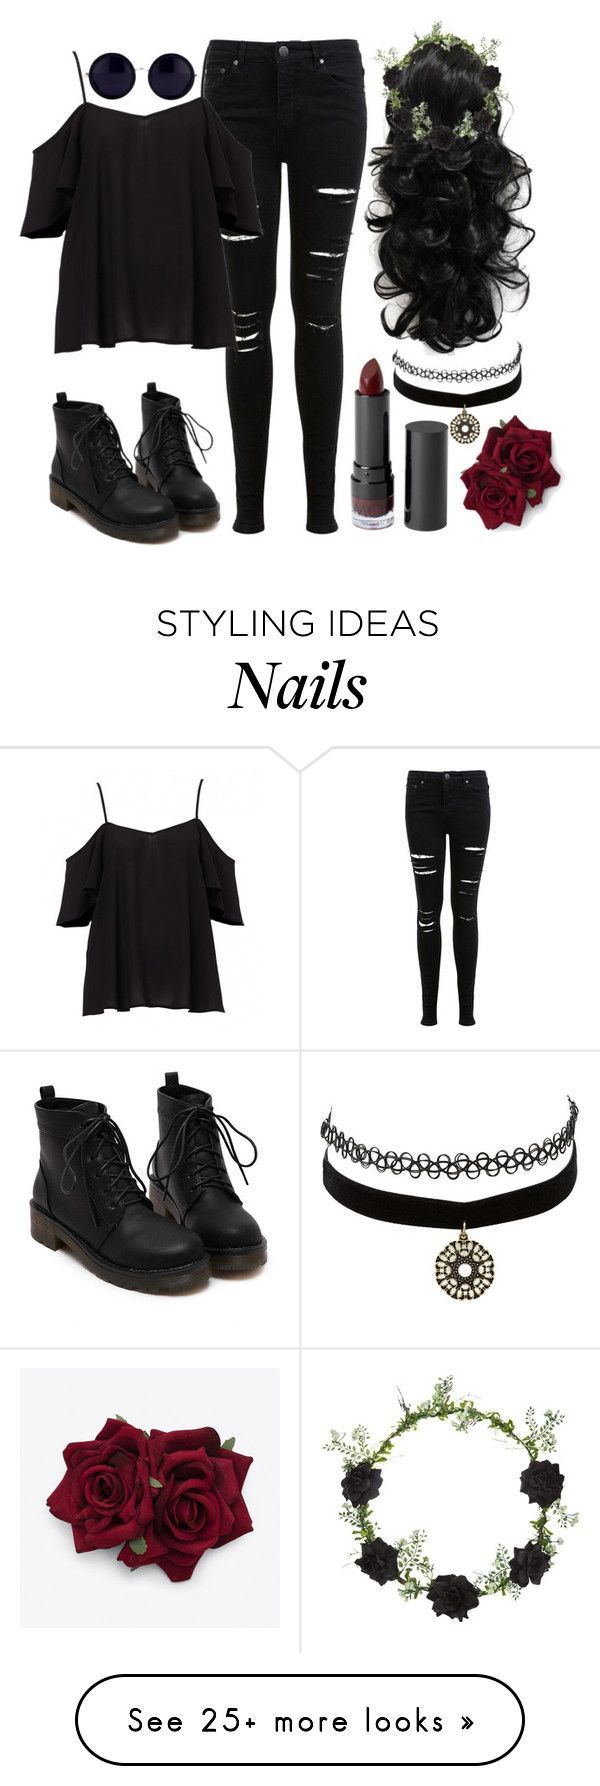 U0026quot;itu0026#39;s called grunge not gothu0026quot; by chickadeeanya on Polyvore featuring Miss Selfri | Grunge ...